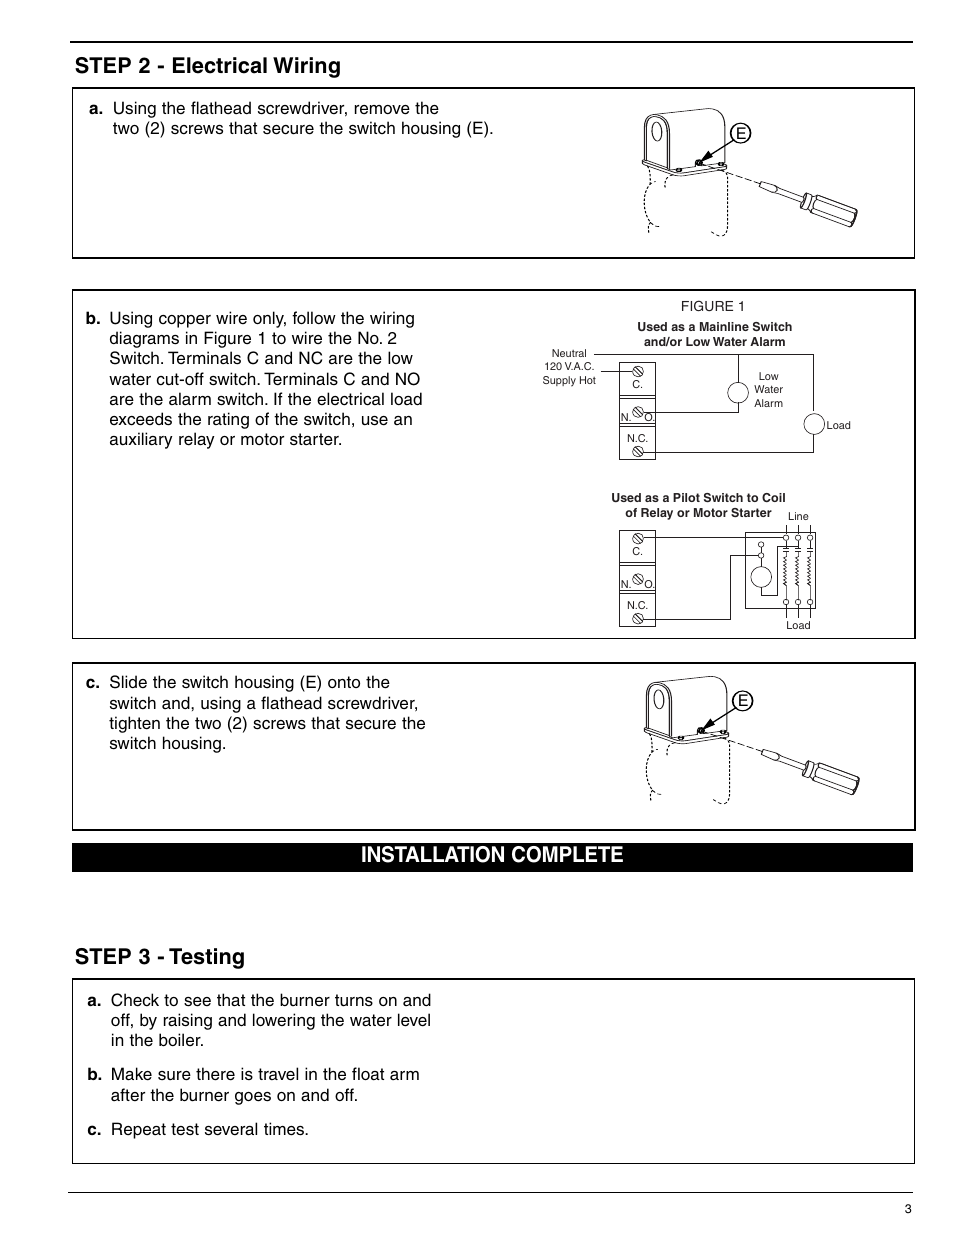 Cut Off On And Switch Wiring Diagram Best Library Two Float 2 For Series 47 247 63 51 53 Water Feeders